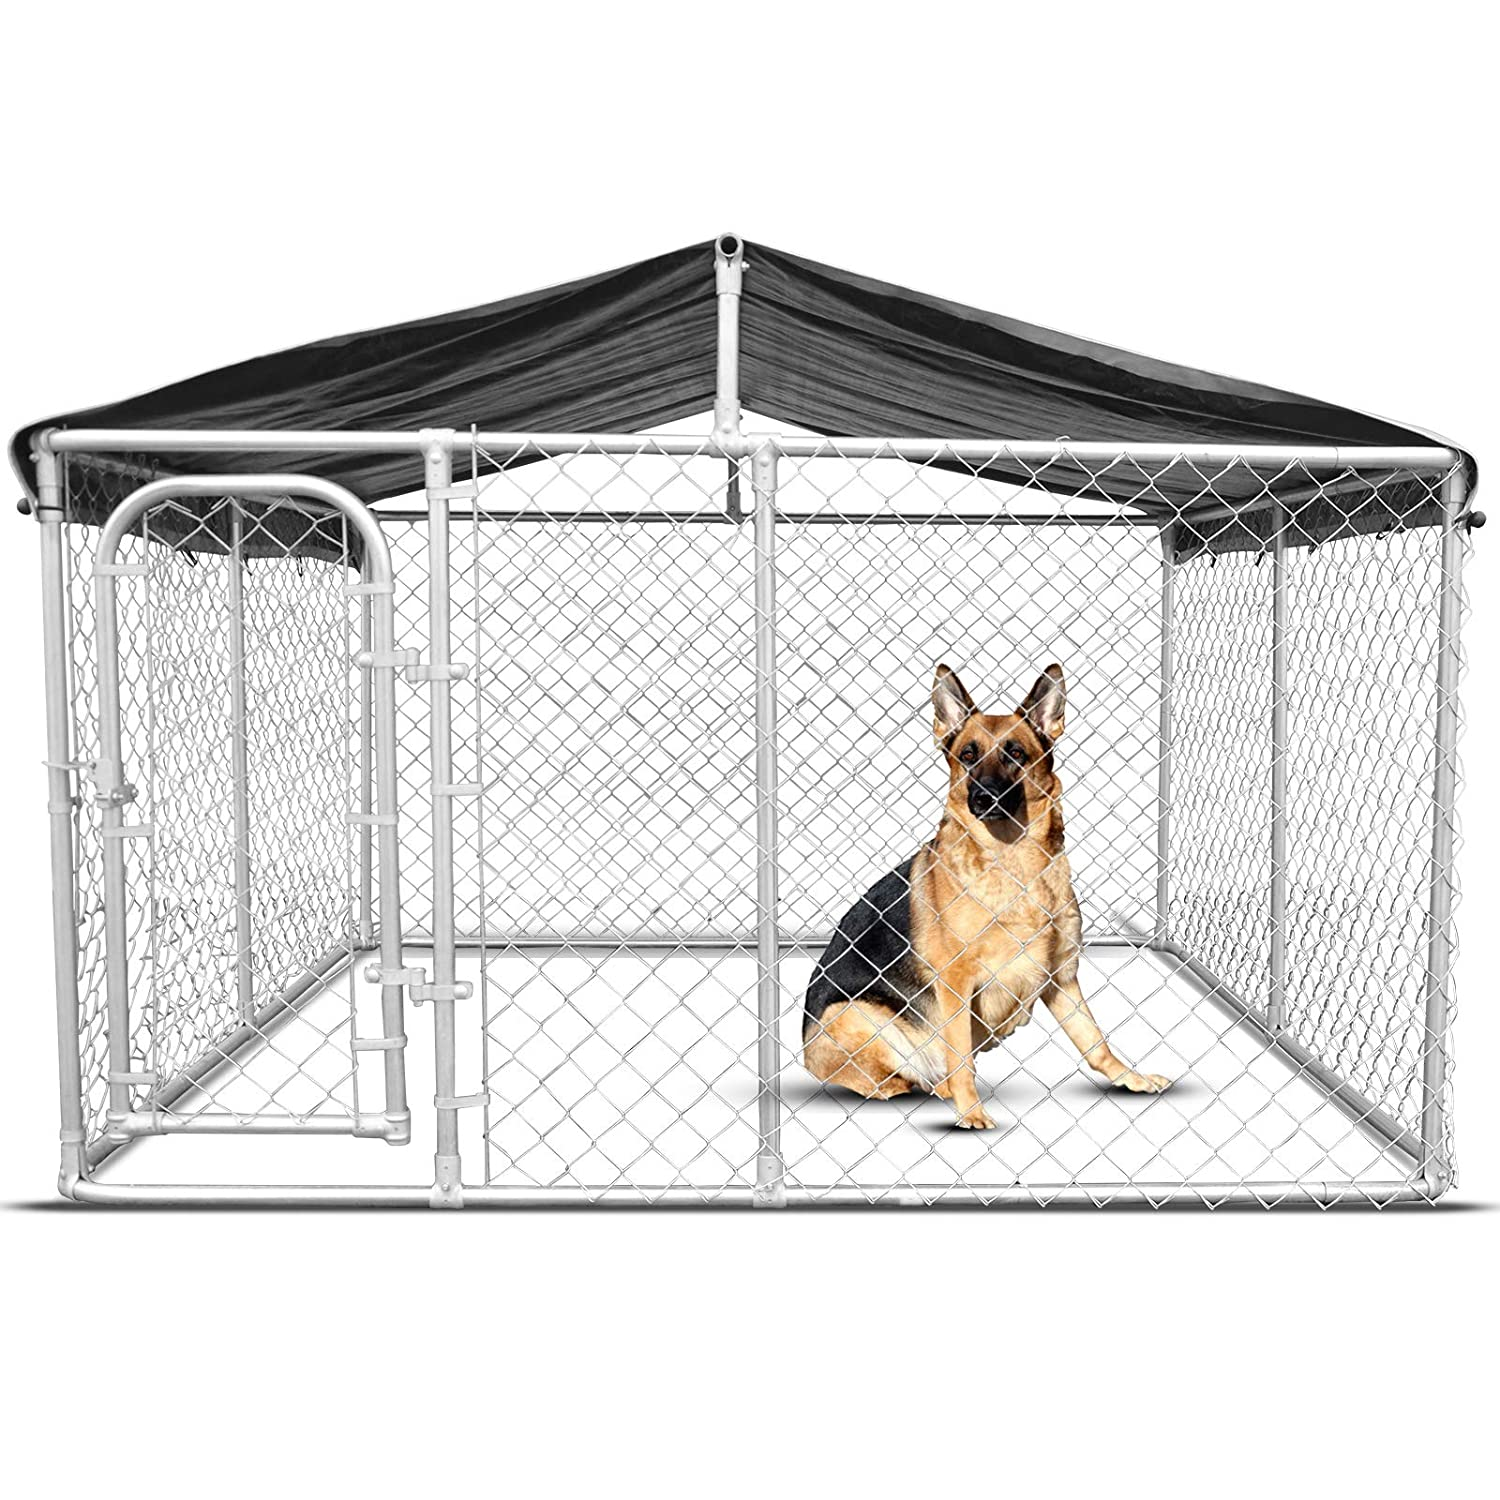 M New Pet Dog Kennel Enclosure Playpen Puppy Run Exercise Fence Cage Play Pen